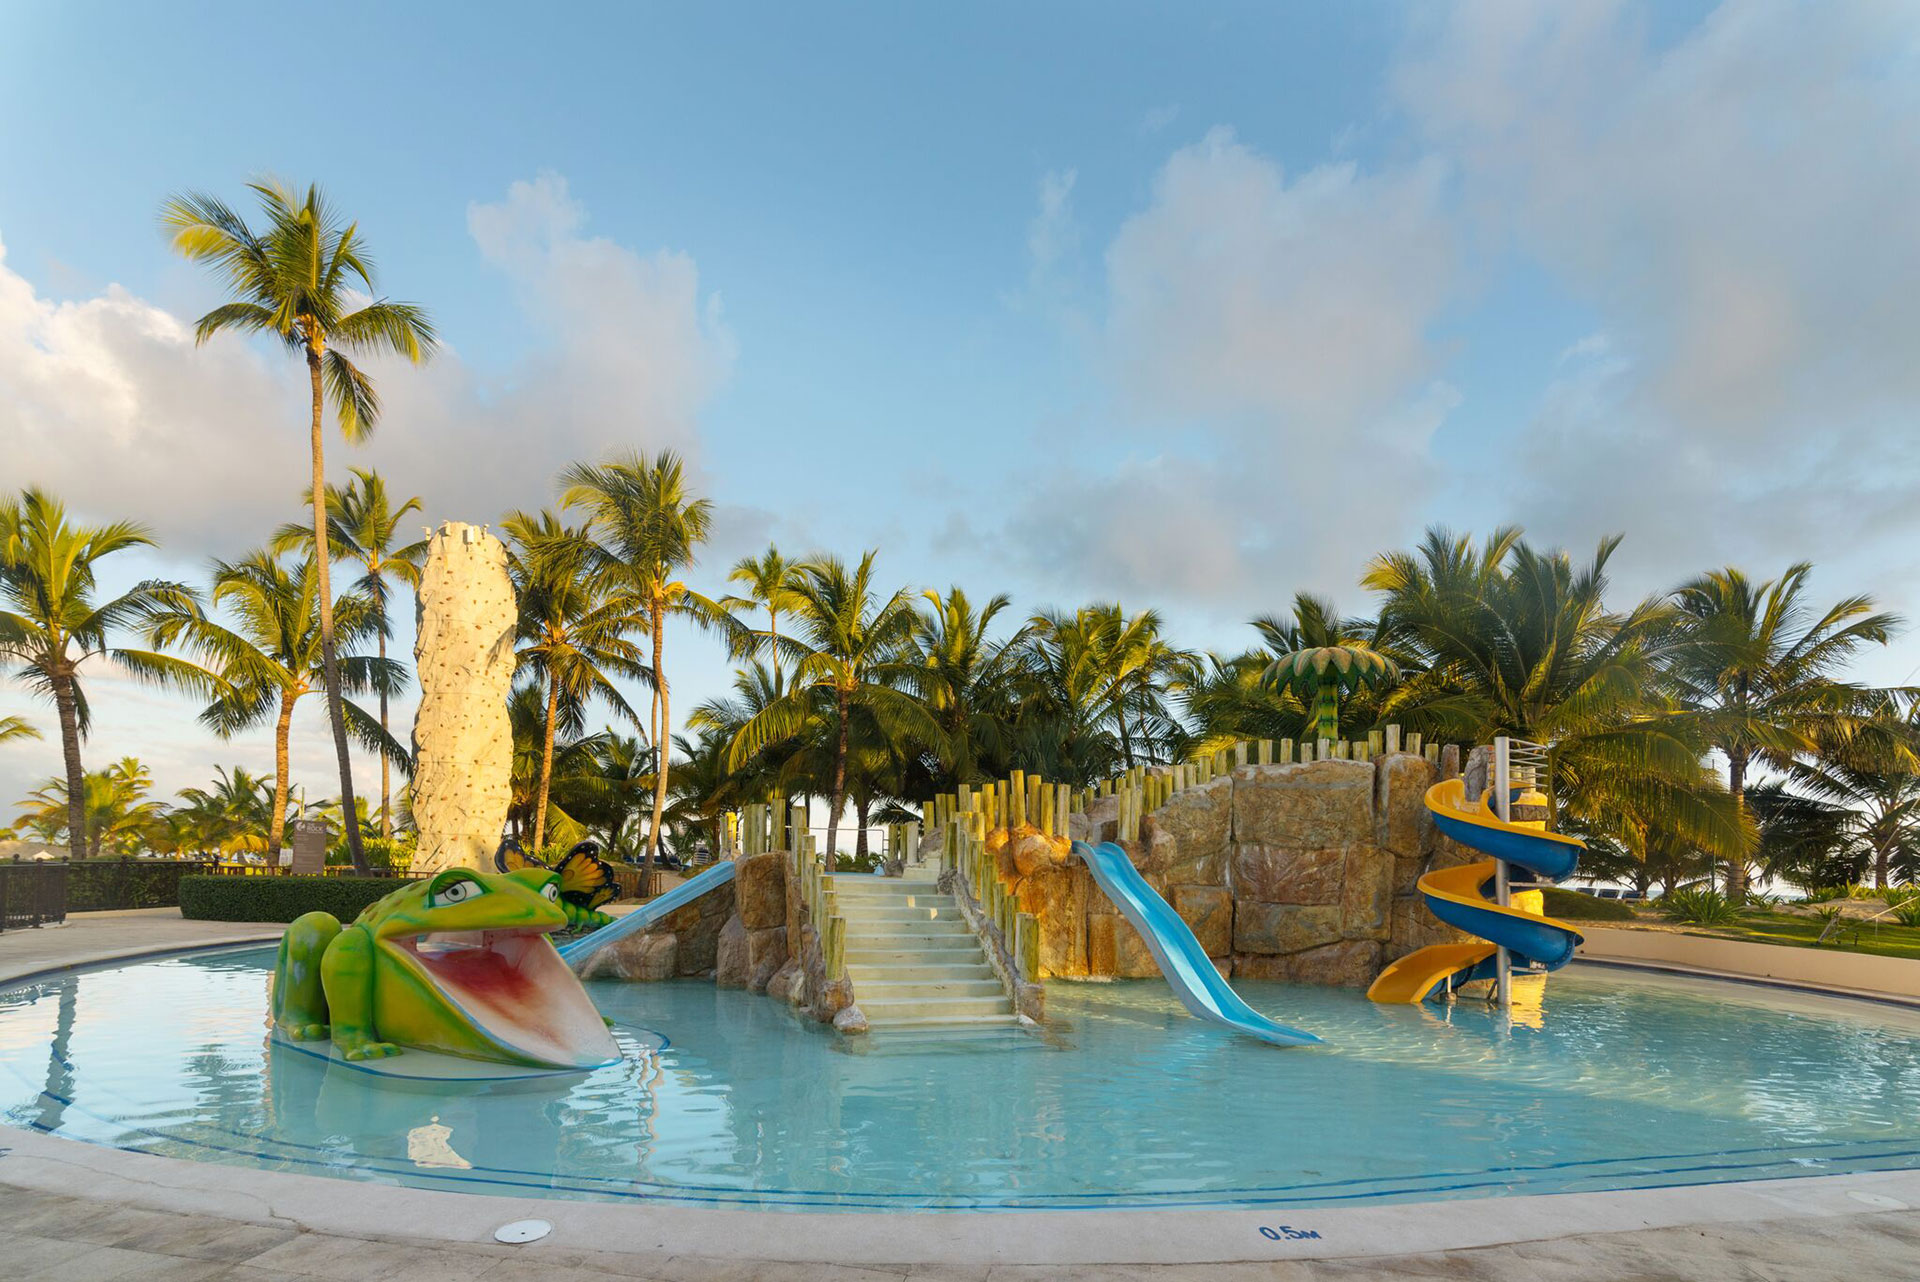 Water slides and pool at Occidental Caribe